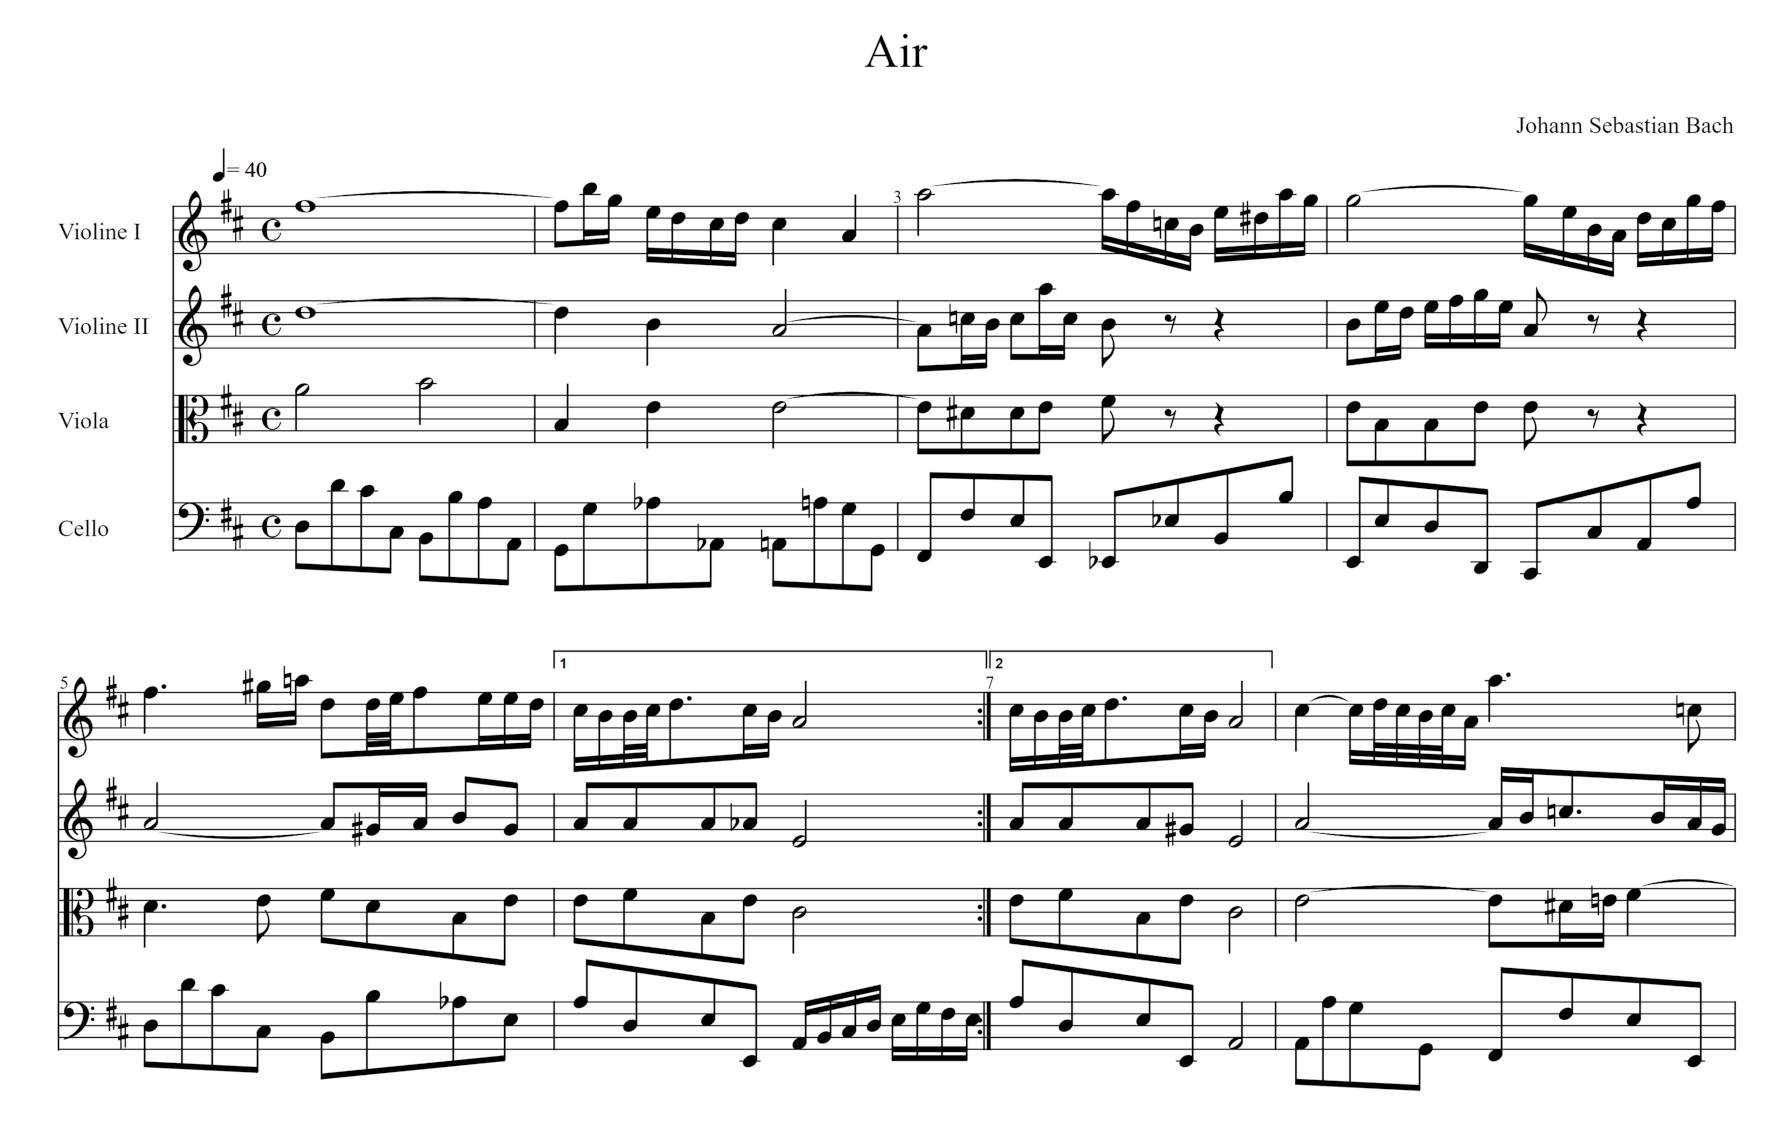 Musical notation of